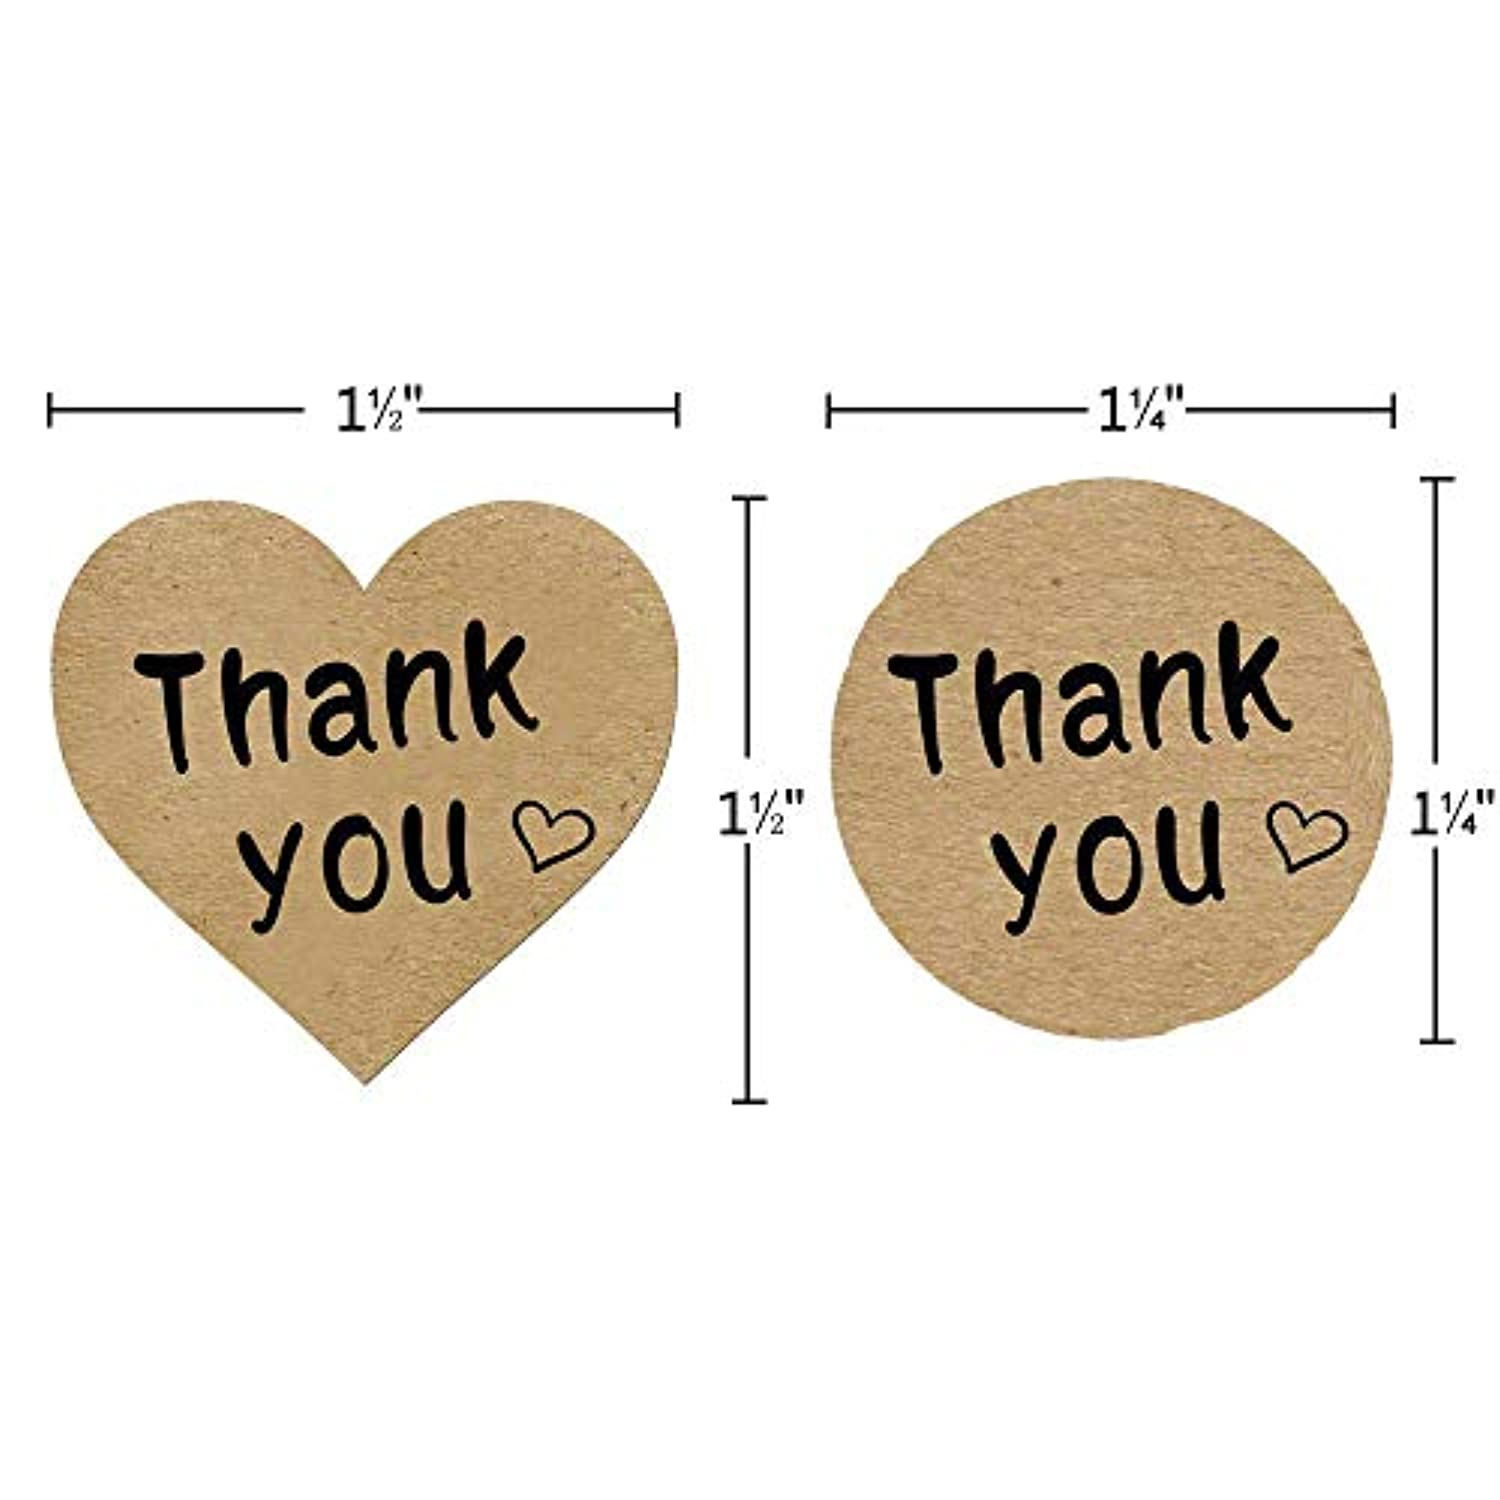 Classier: Buy Vinkki Thank You Stickers Roll 1000pcs Adhesive Labels Kraft Paper with Black Hearts, Decorative Sealing Stickers for Christmas Gifts, Wedding, Party